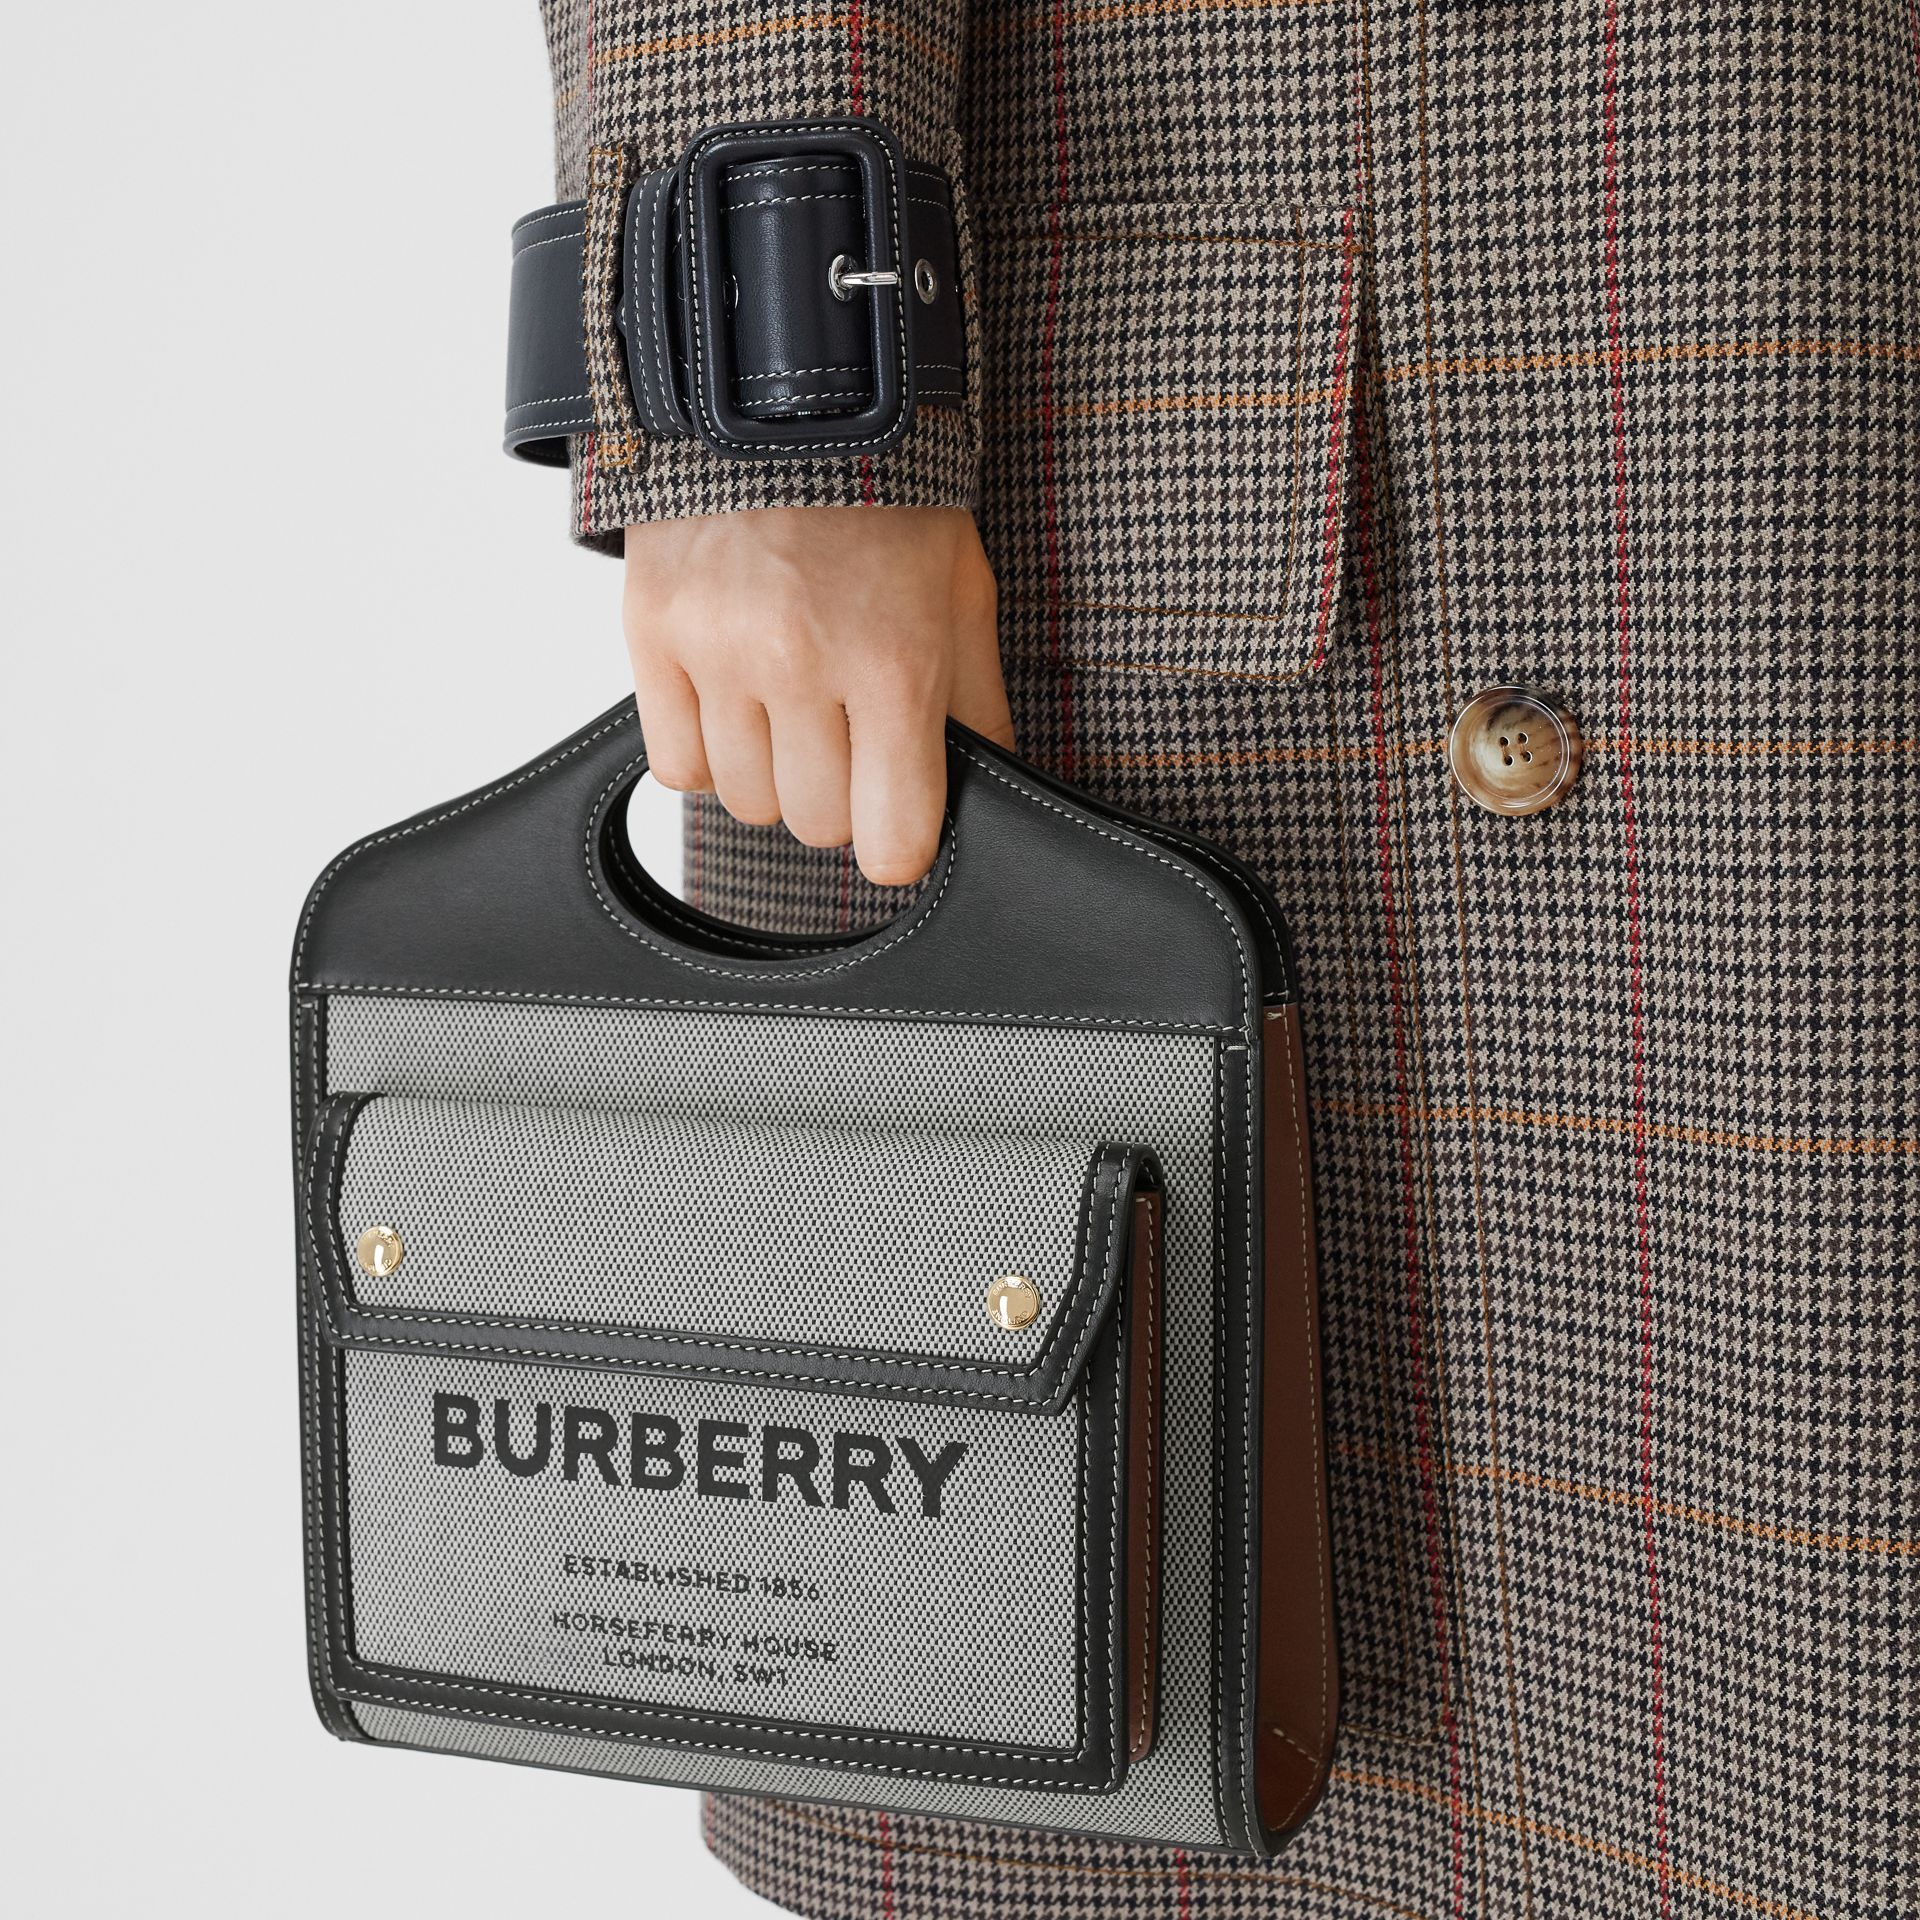 Mini Tri-tone Canvas and Leather Pocket Bag in Black/tan - Women | Burberry - gallery image 2